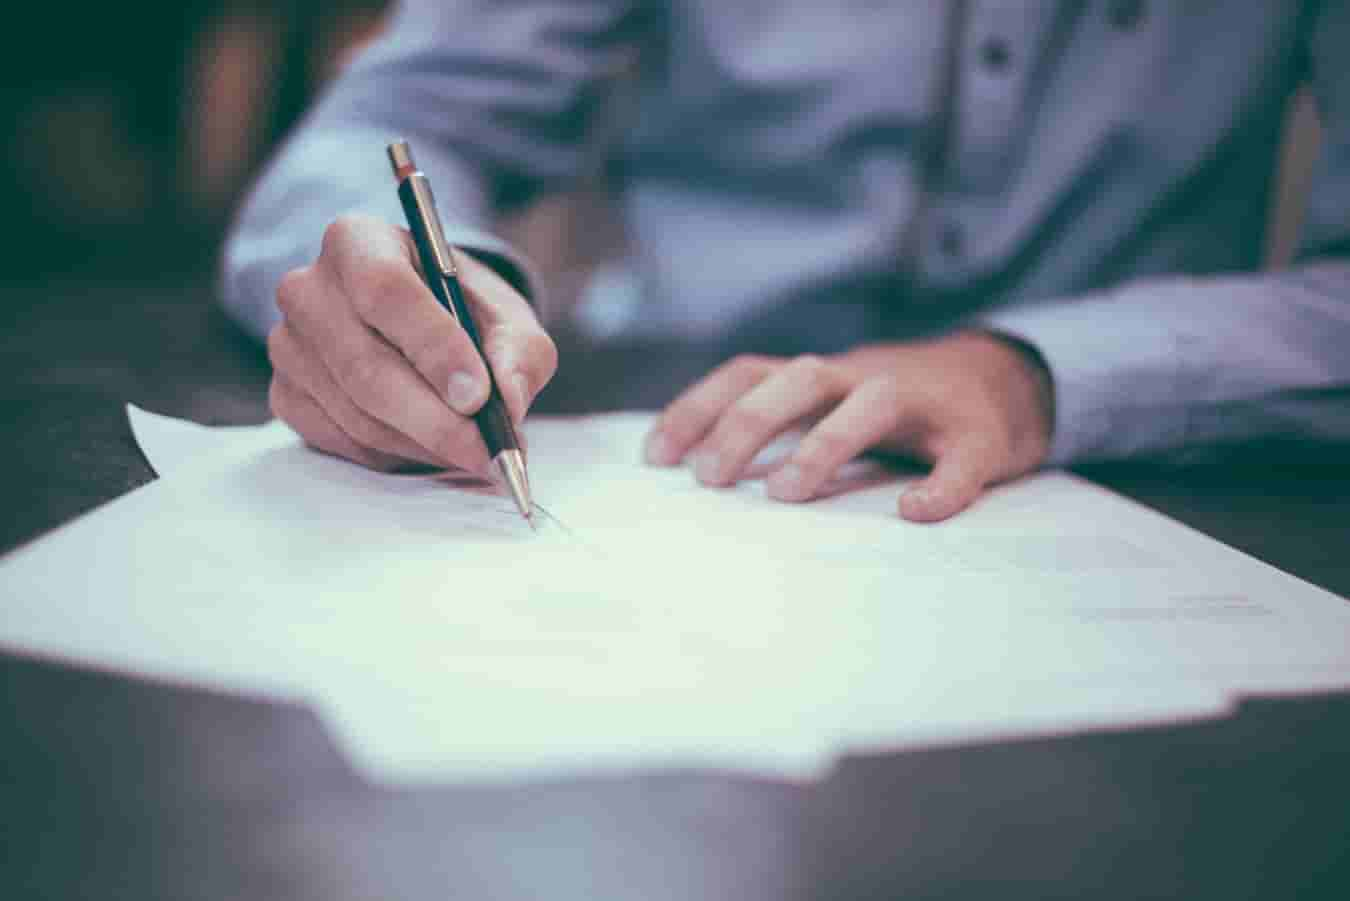 Image | person sitting at desk signing papers